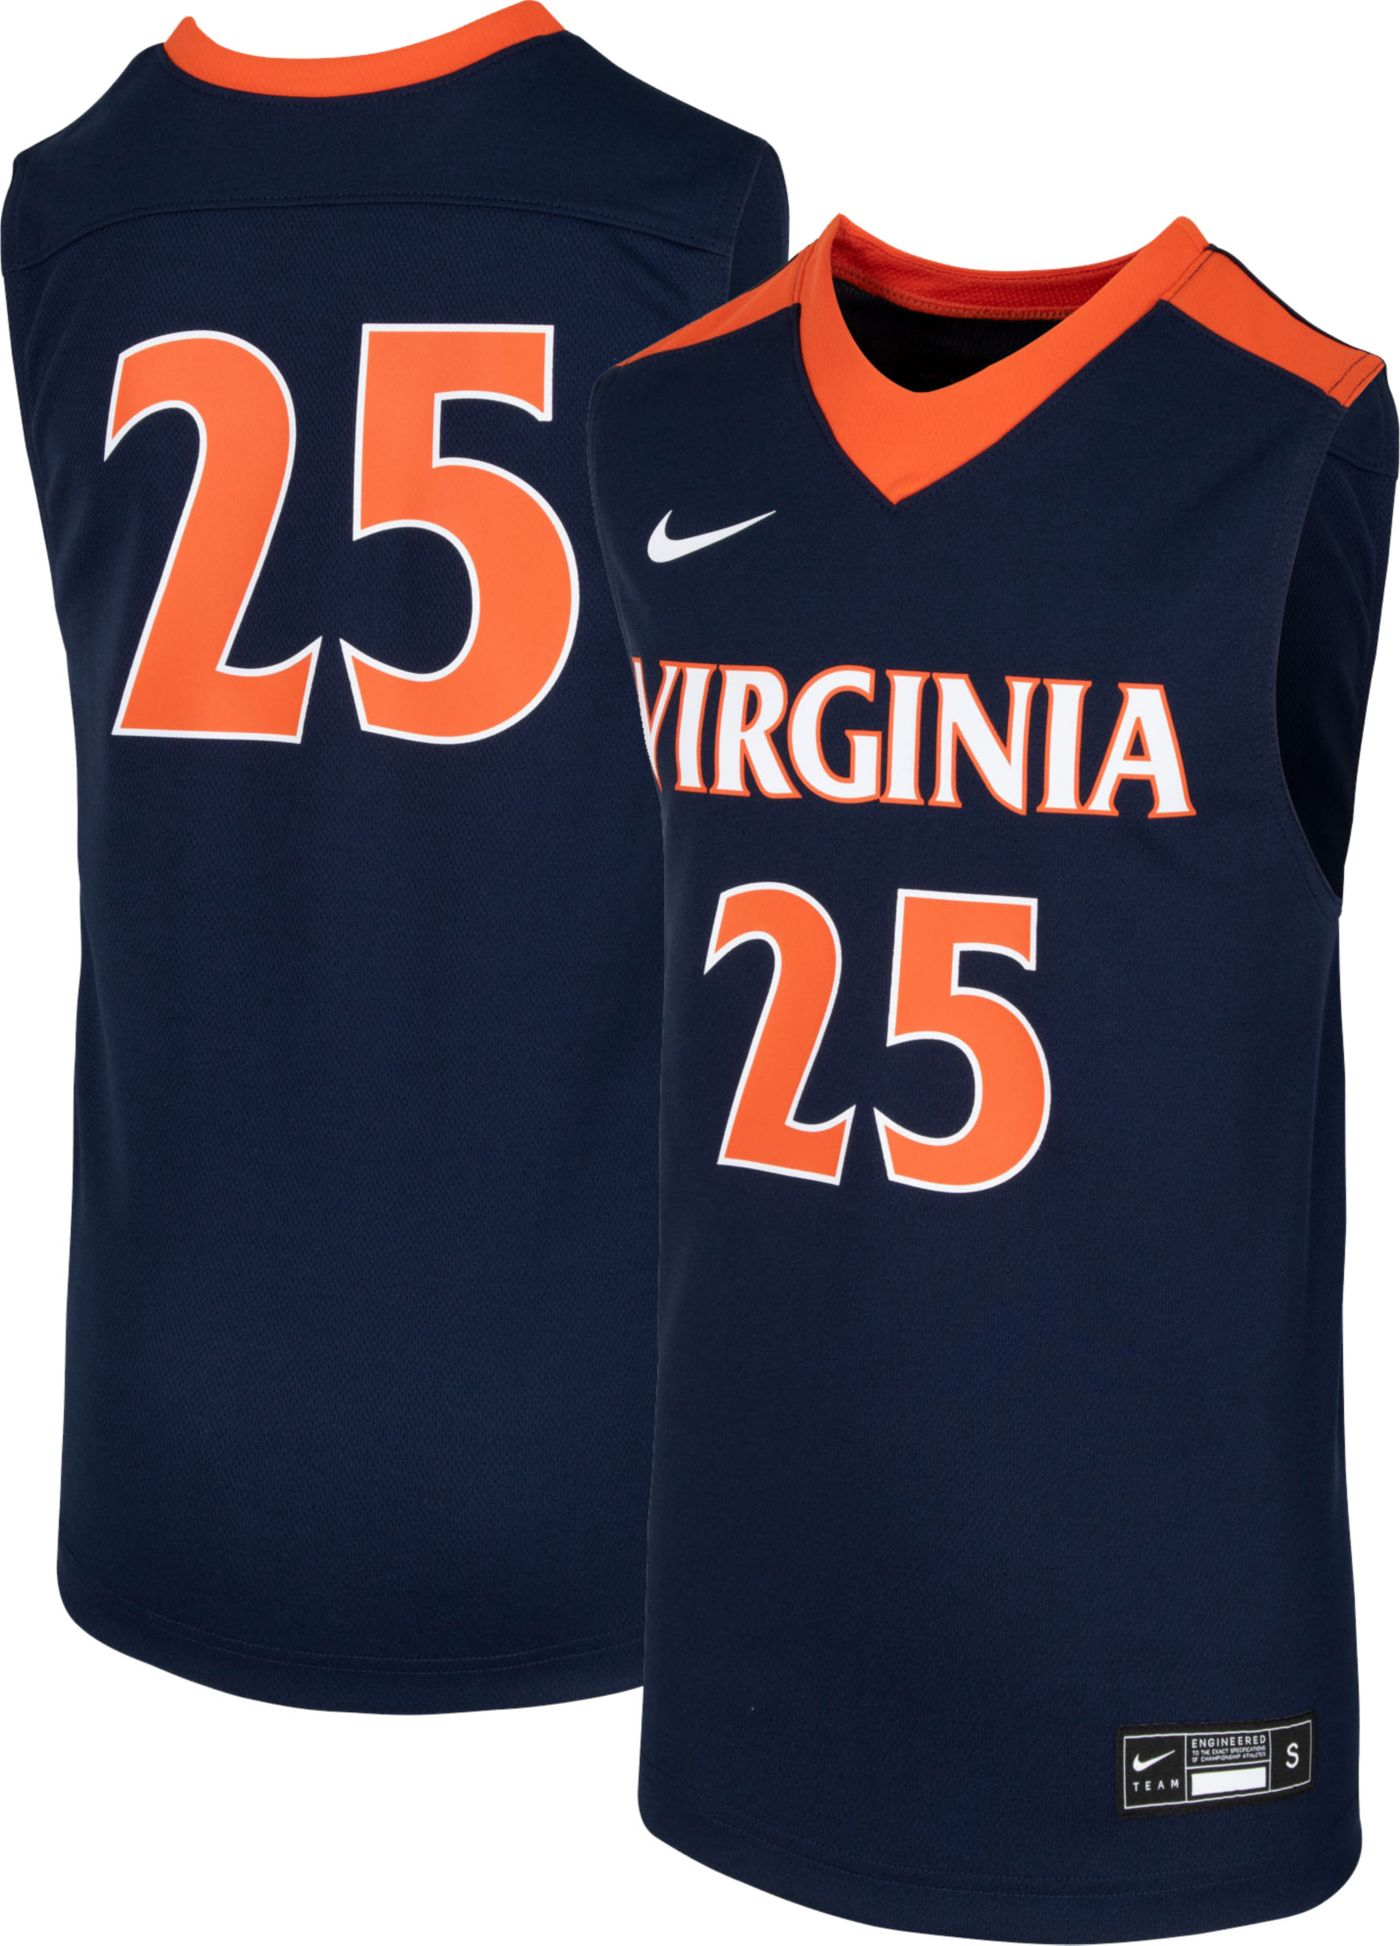 Nike Youth Virginia Cavaliers #25 Blue Replica Basketball Jersey